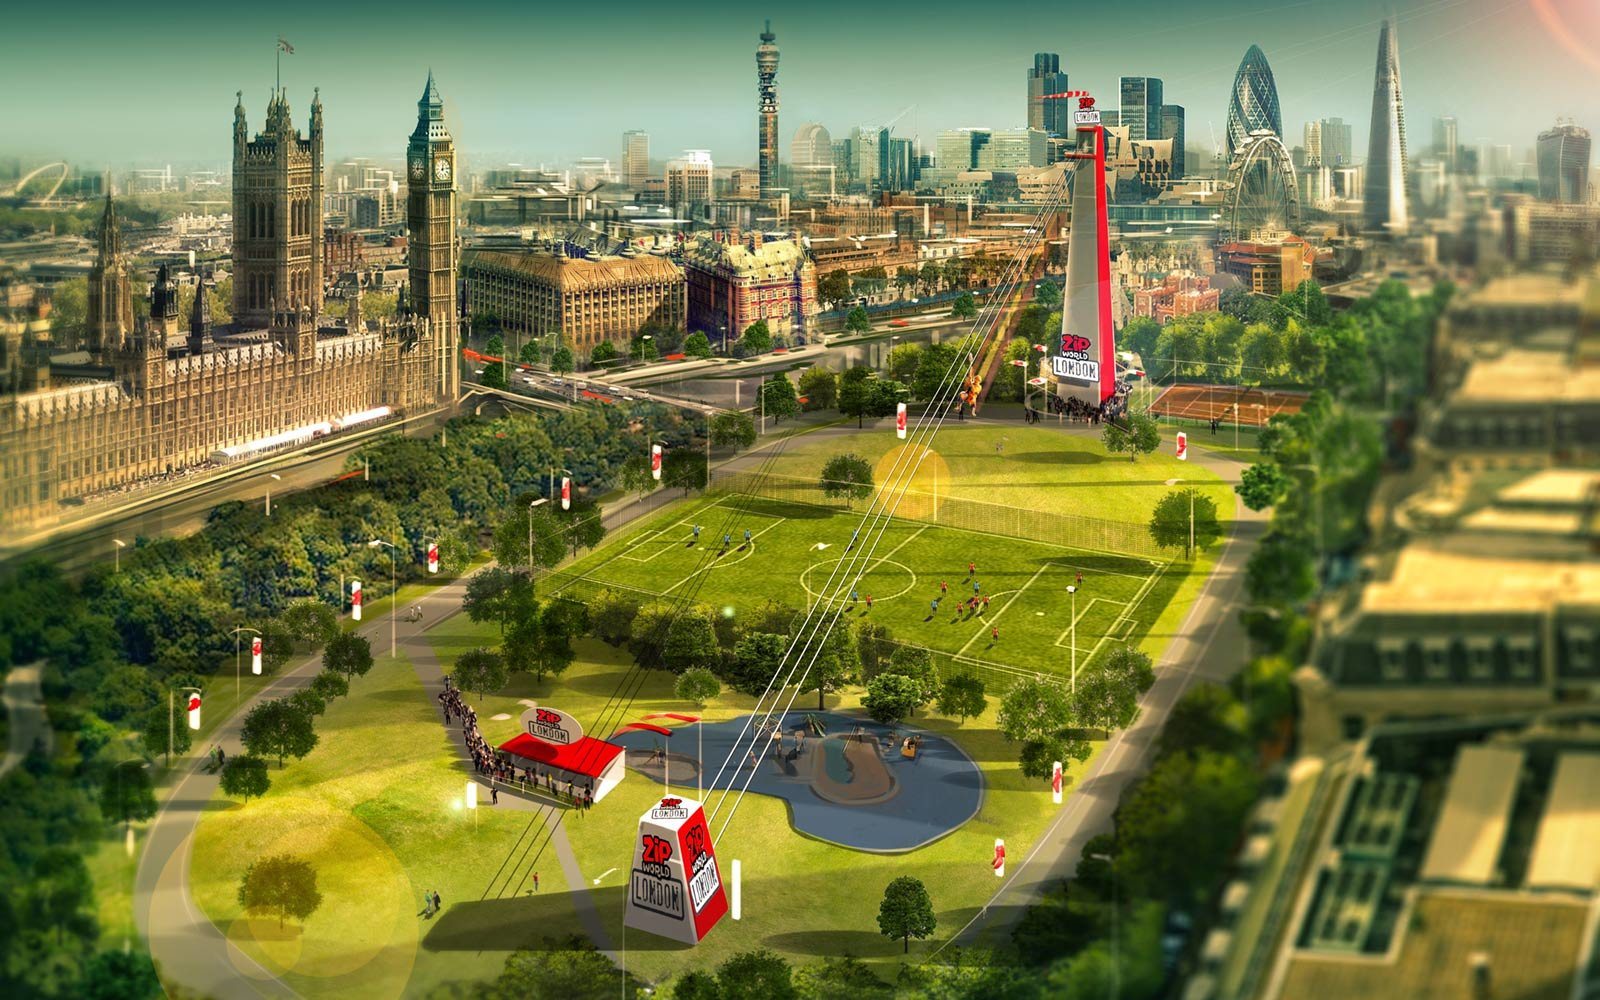 London S New Zip Line Will Take You On An Epic Ride Over